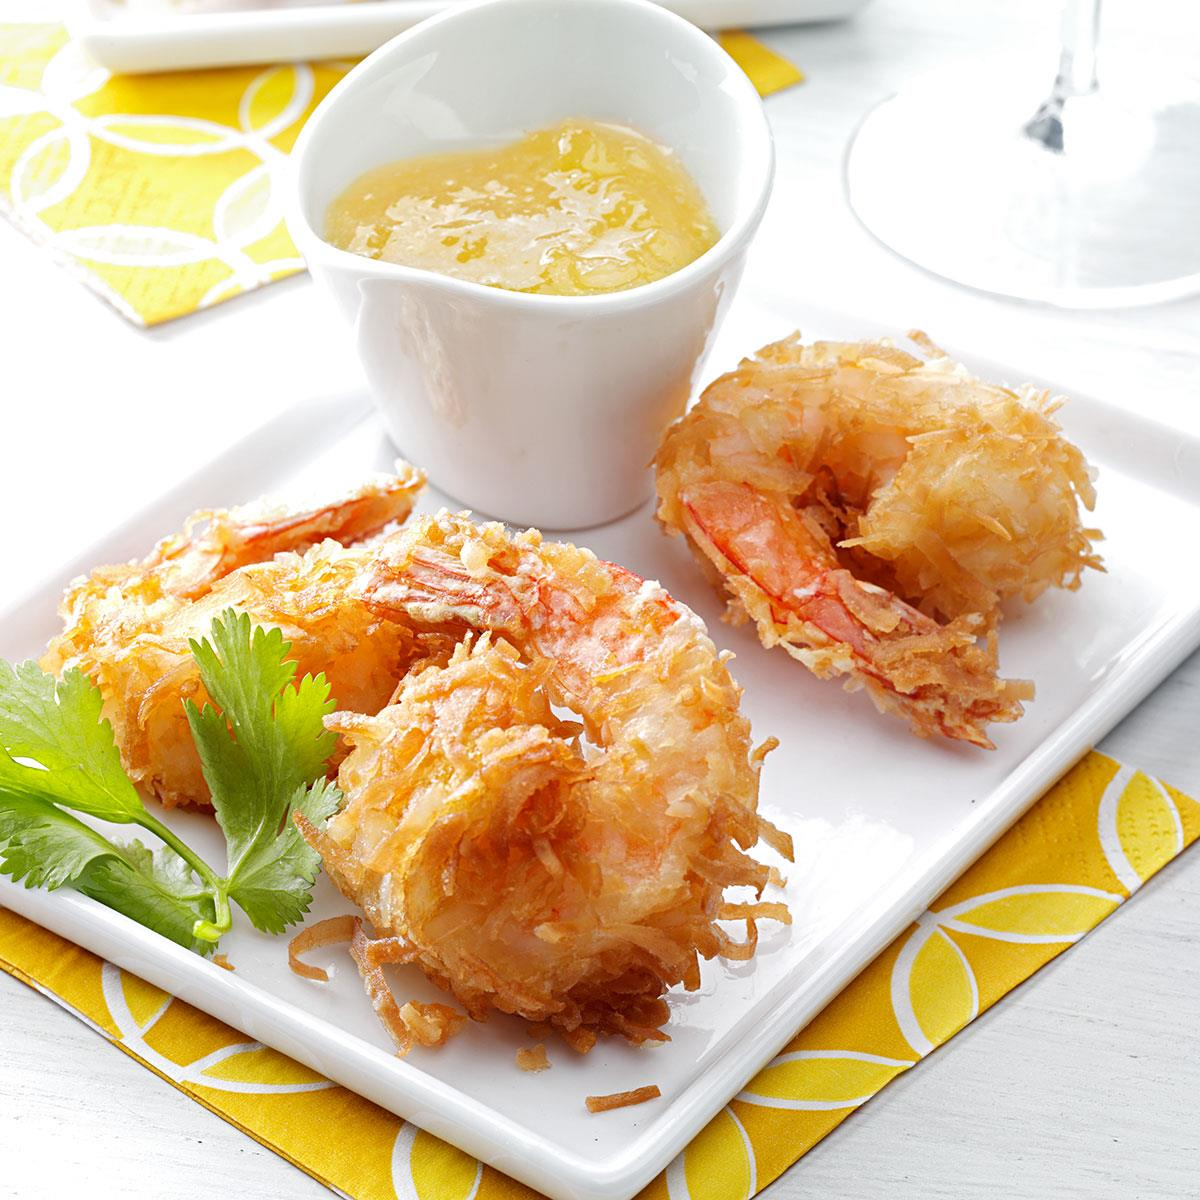 1. Coconut popcorn shrimp advise